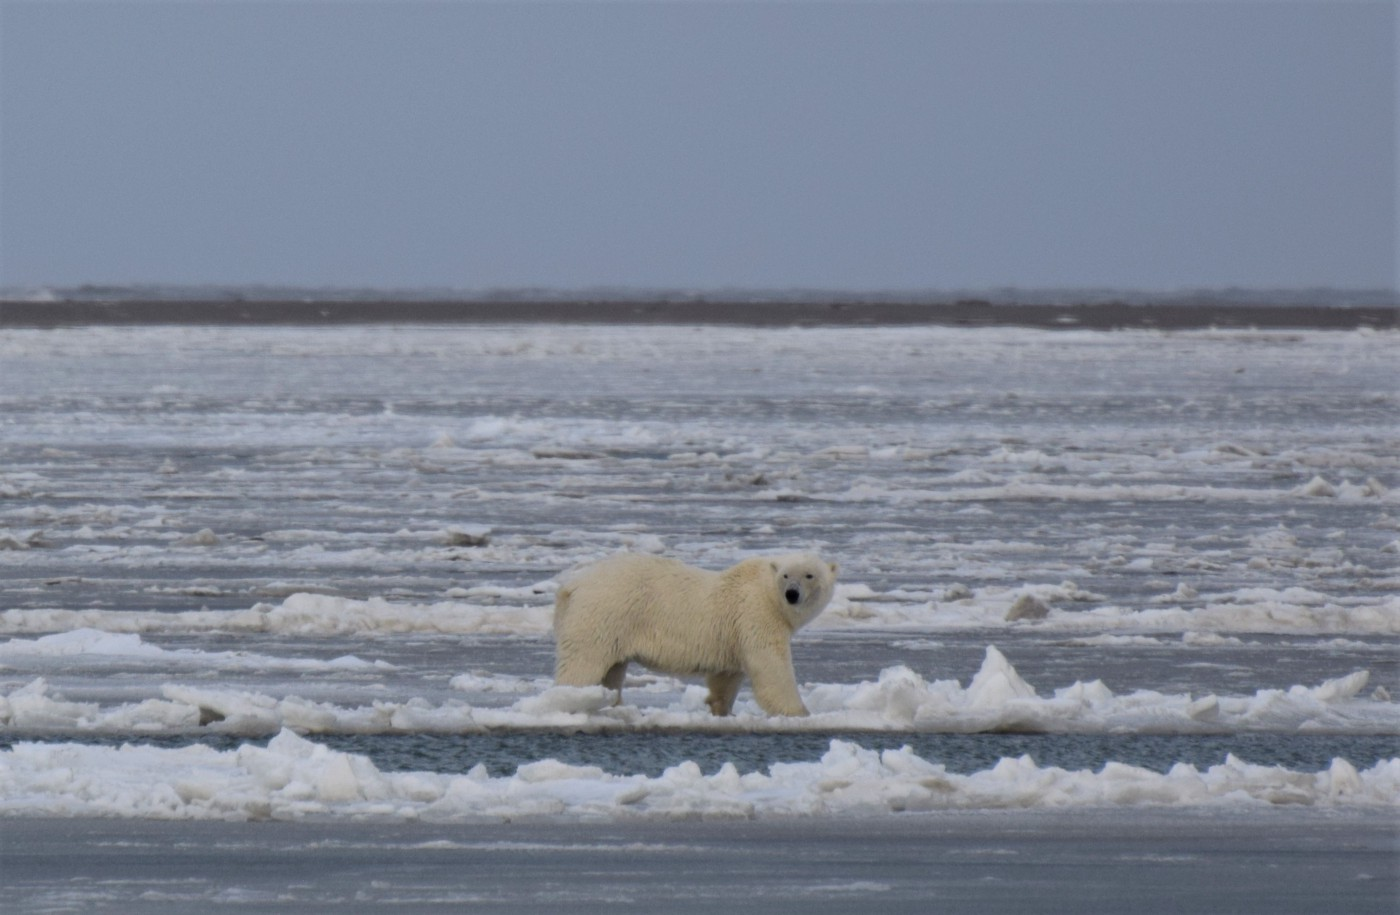 A profile of a polar bear walking through ice and water.